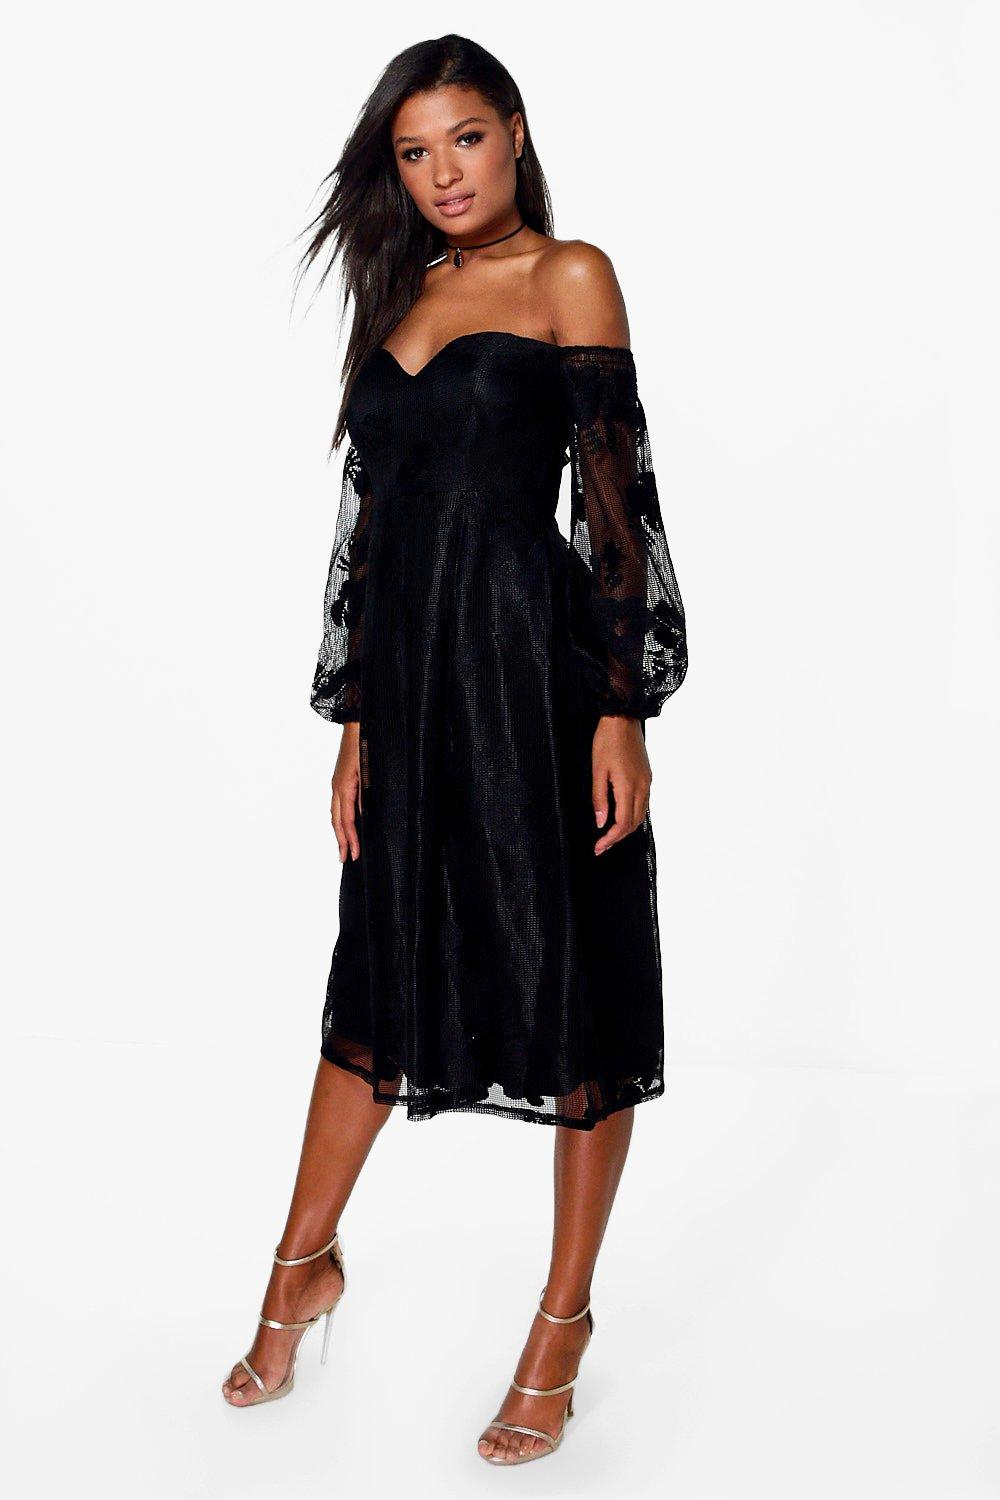 http://www.boohoo.com/boutique-le-lace-bardot-long-sleeved-dress/DZZ73086.html?color=undefined